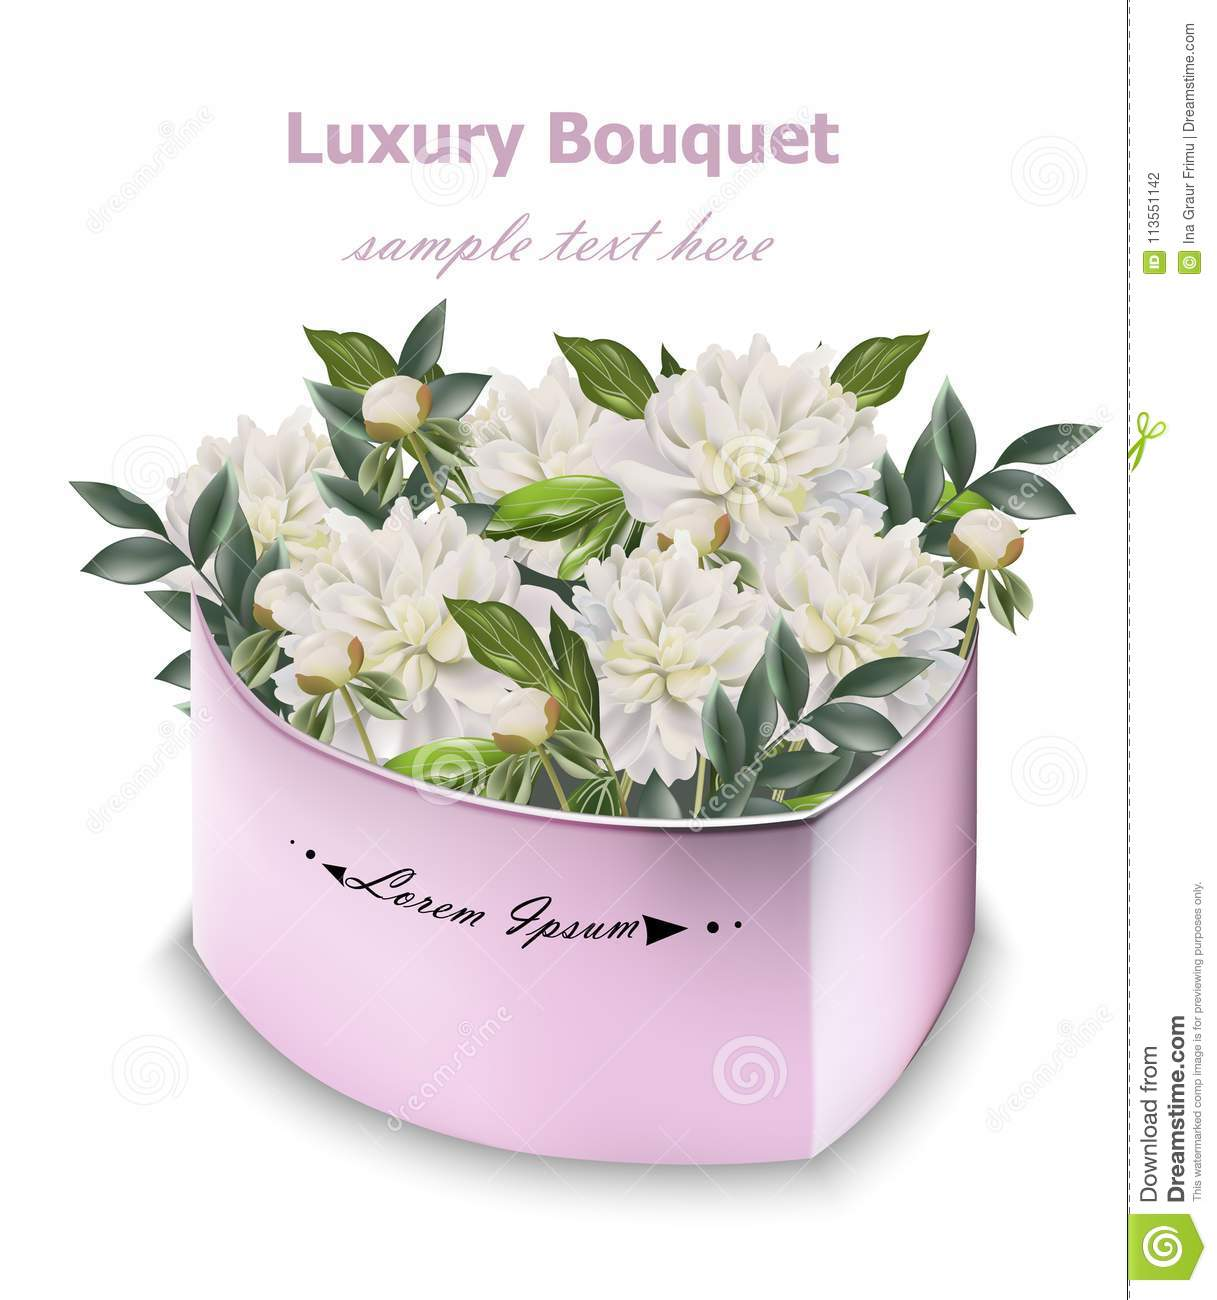 White peony flowers bouquet vector floral decor in a gift boxes white peony flowers bouquet vector floral decor in a gift boxes izmirmasajfo